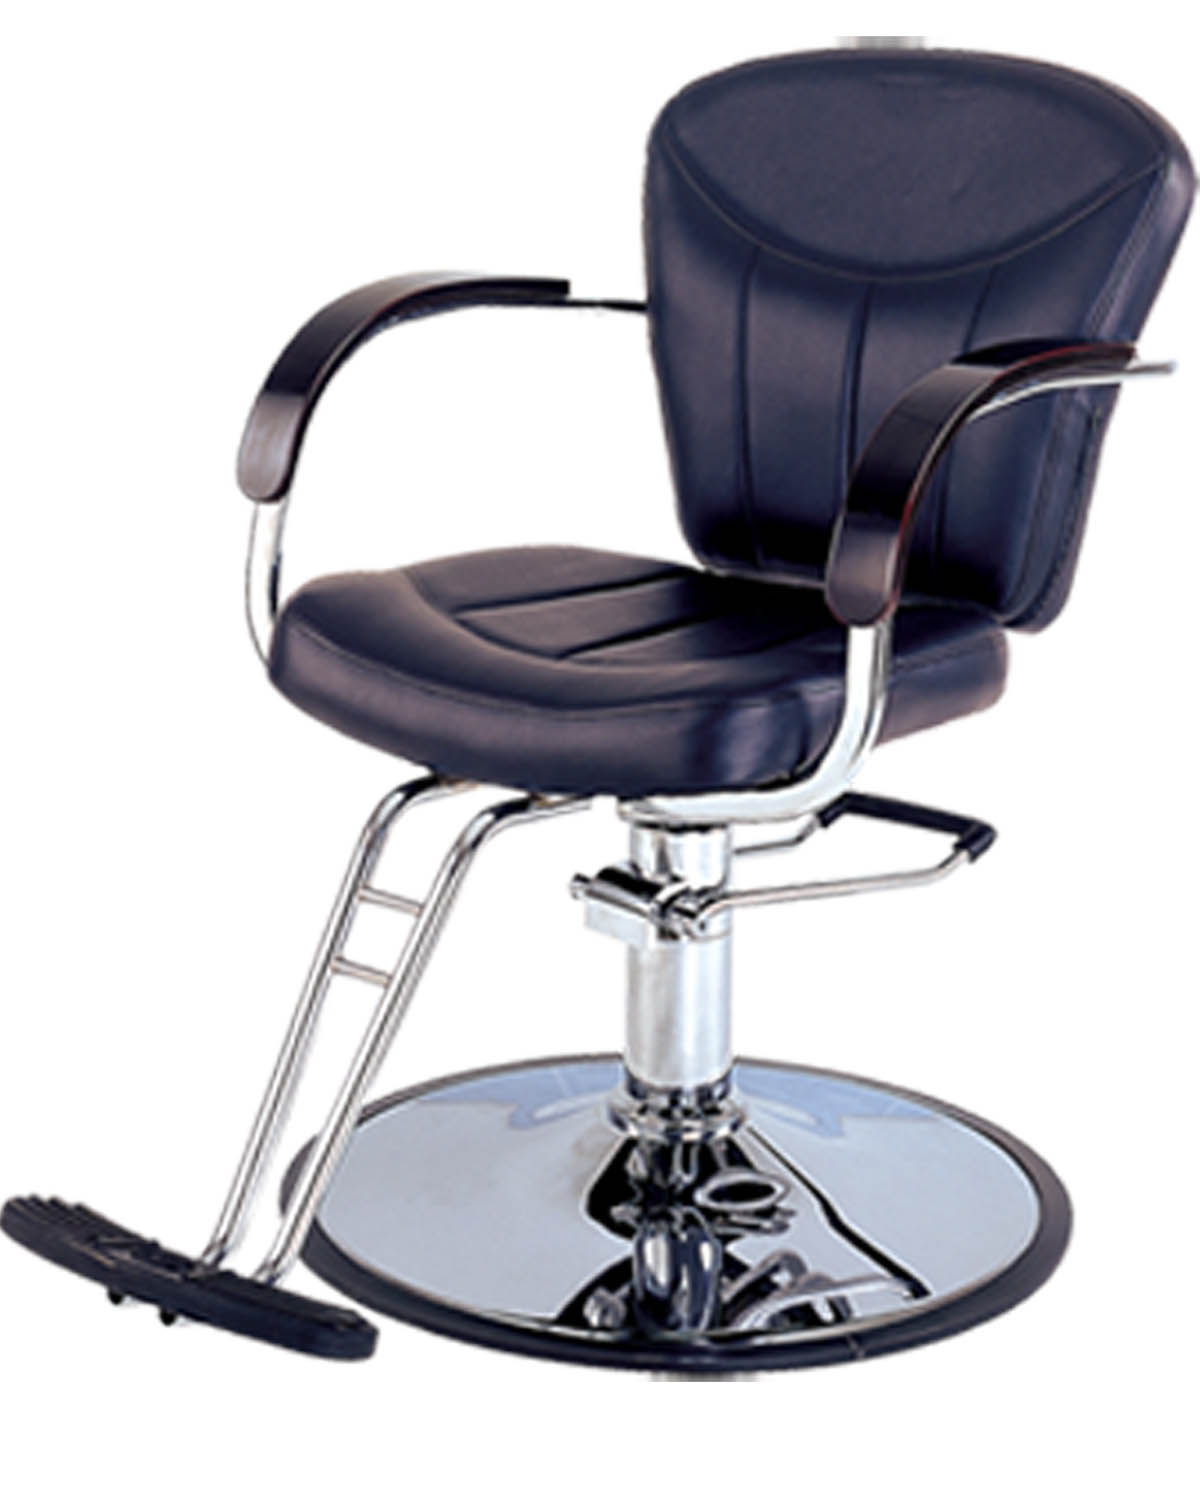 beauty salon equipment trinidad classifieds